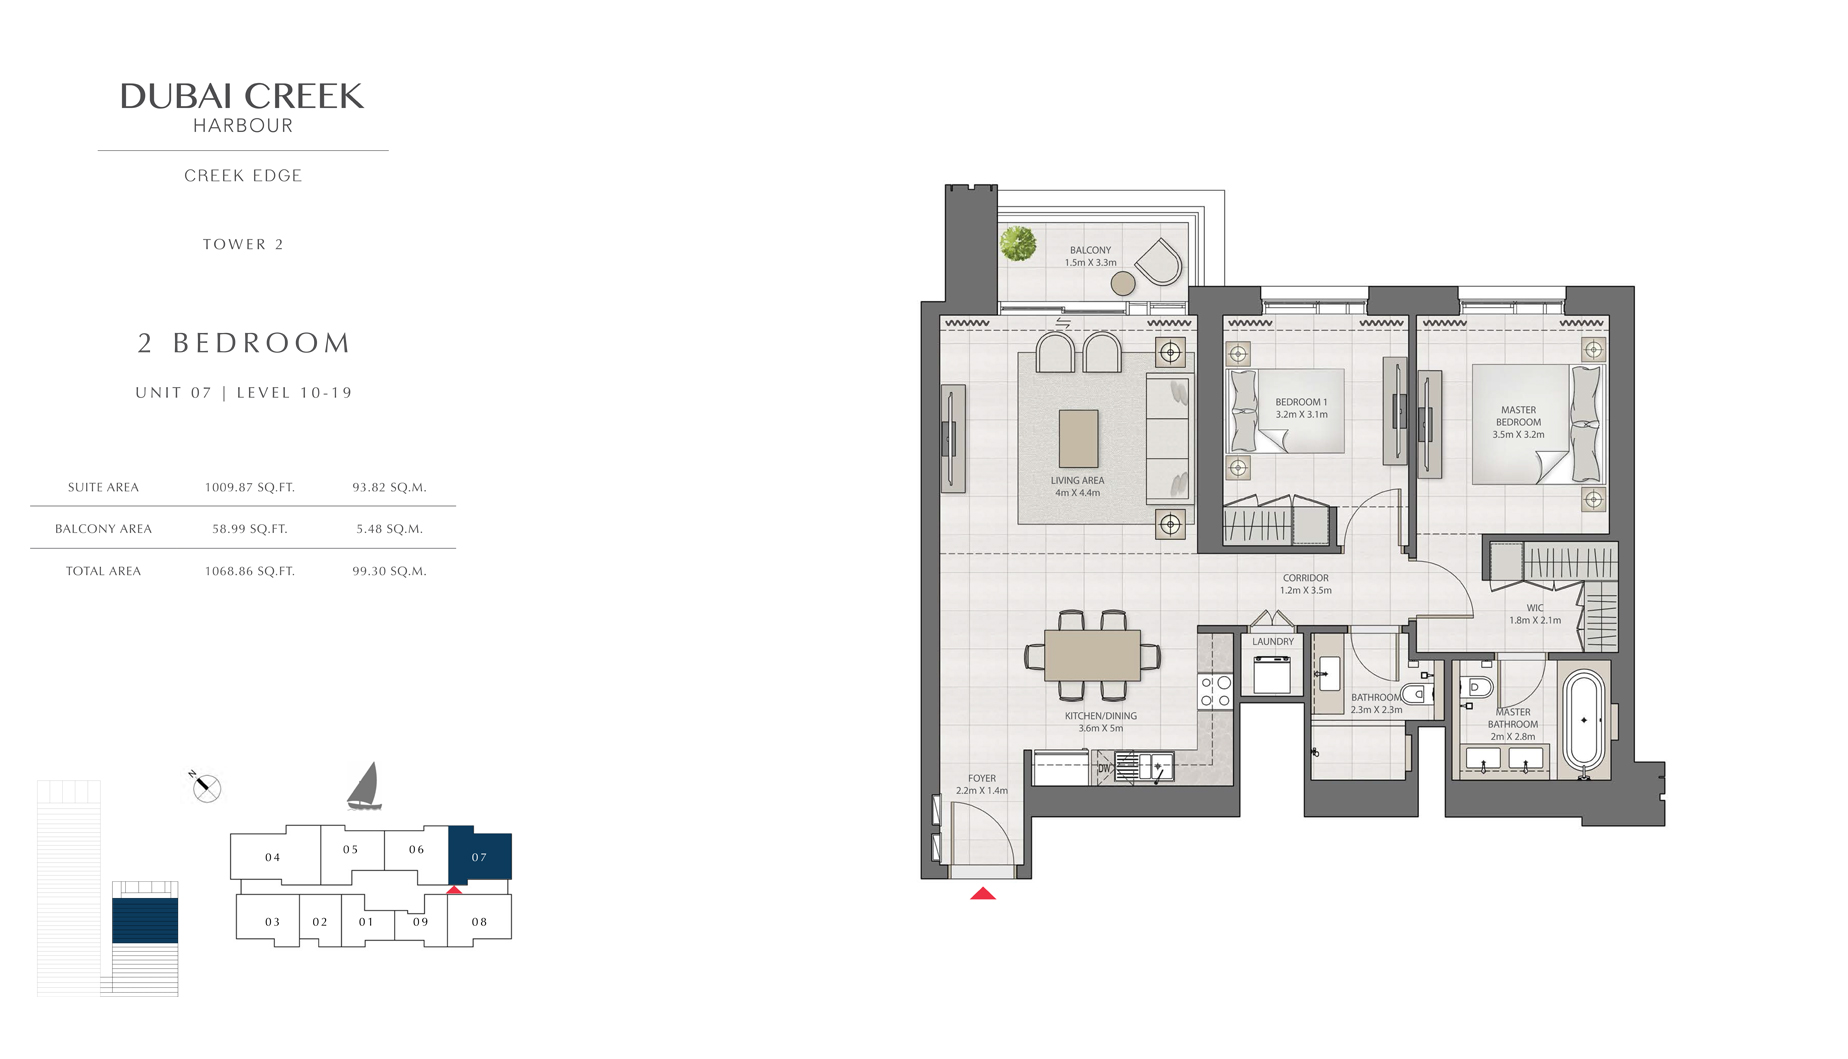 2 Bedroom Tower 2 Unit 07 Level 10-19 Size 1068 sq.ft